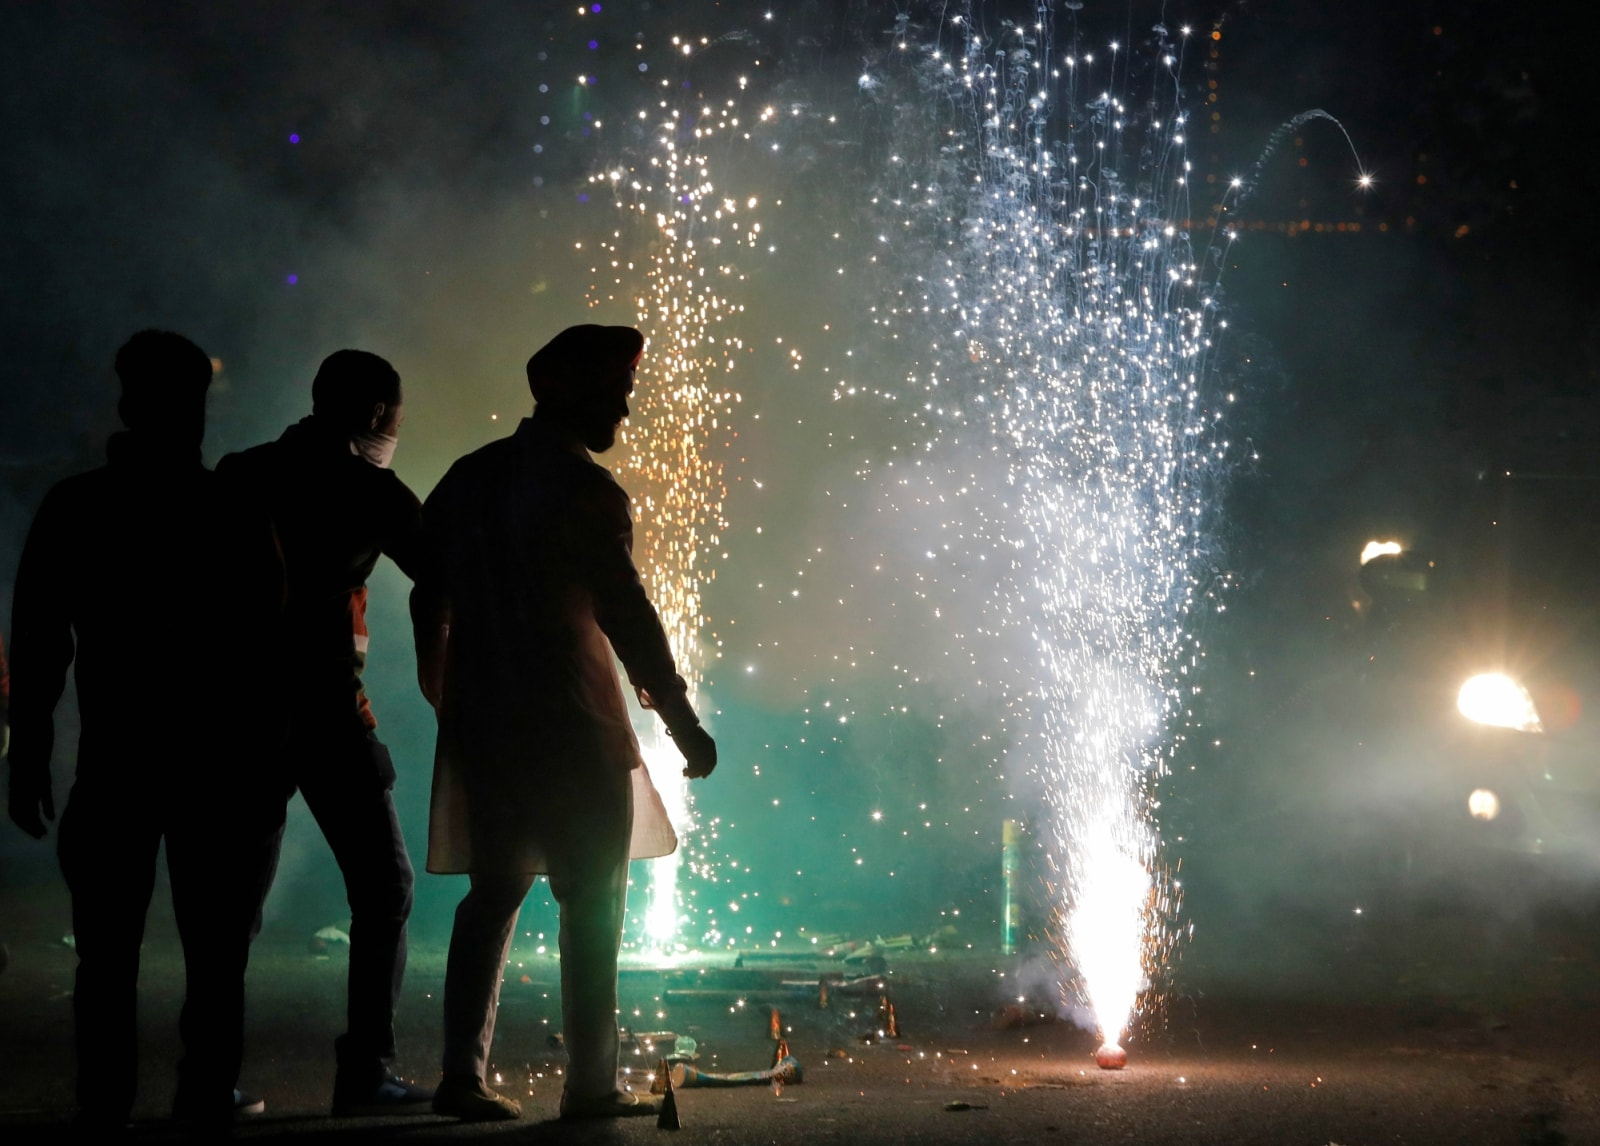 Men light firecrackers on a street as they celebrate Diwali, the Hindu festival of lights, in New Delhi, India, November 7, 2018. REUTERS/Anushree Fadnavis